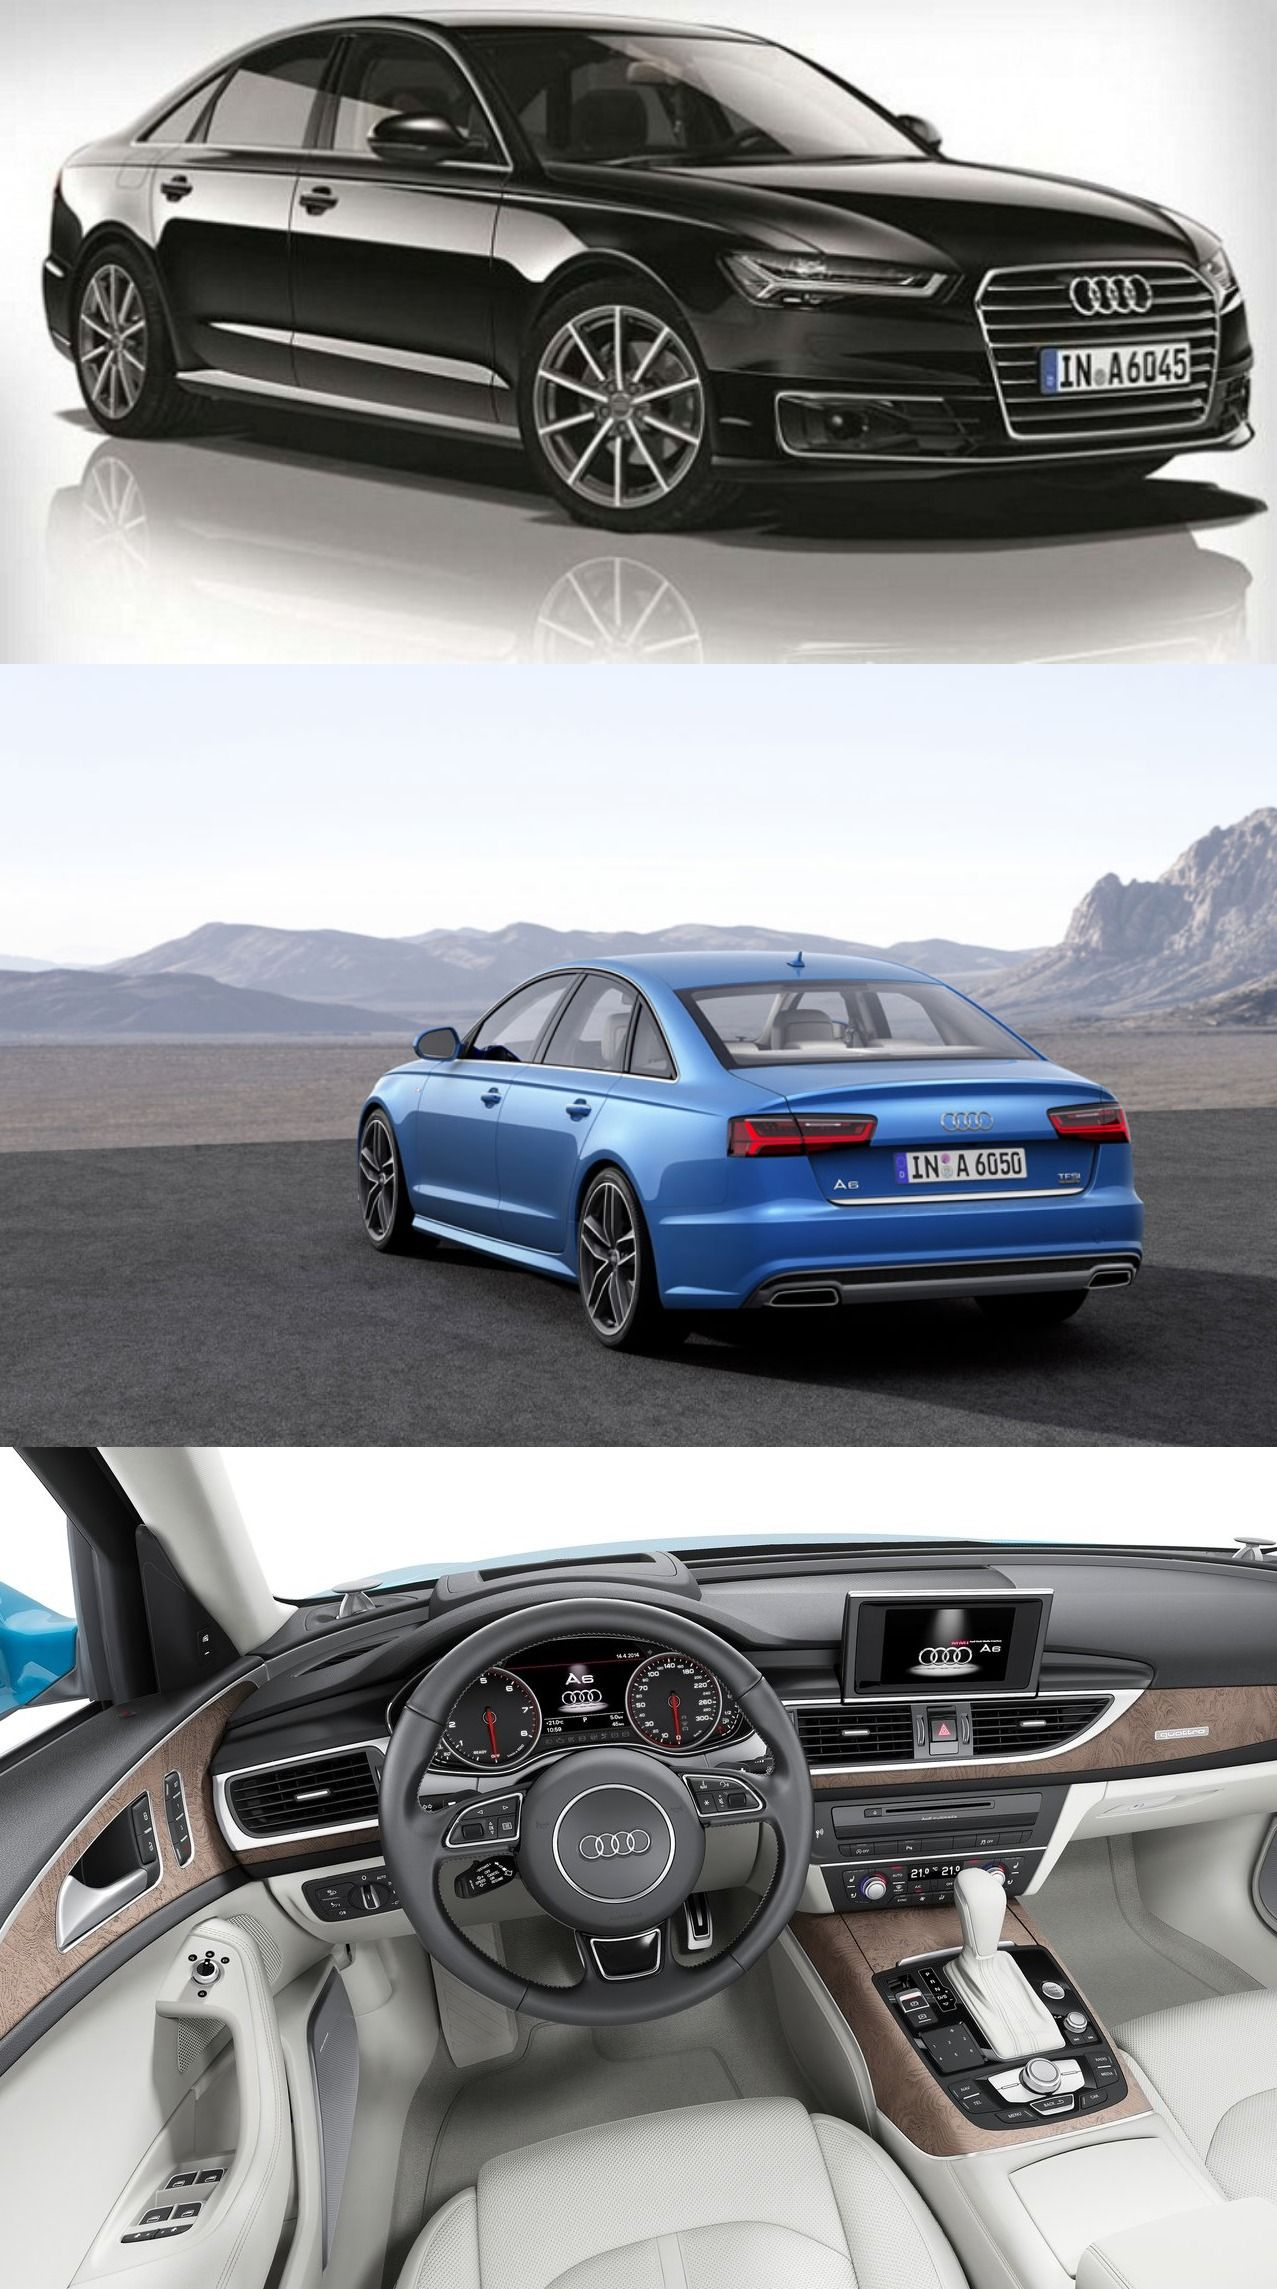 Audi India Brings in A6 35 TFSI with Style and Efficiency